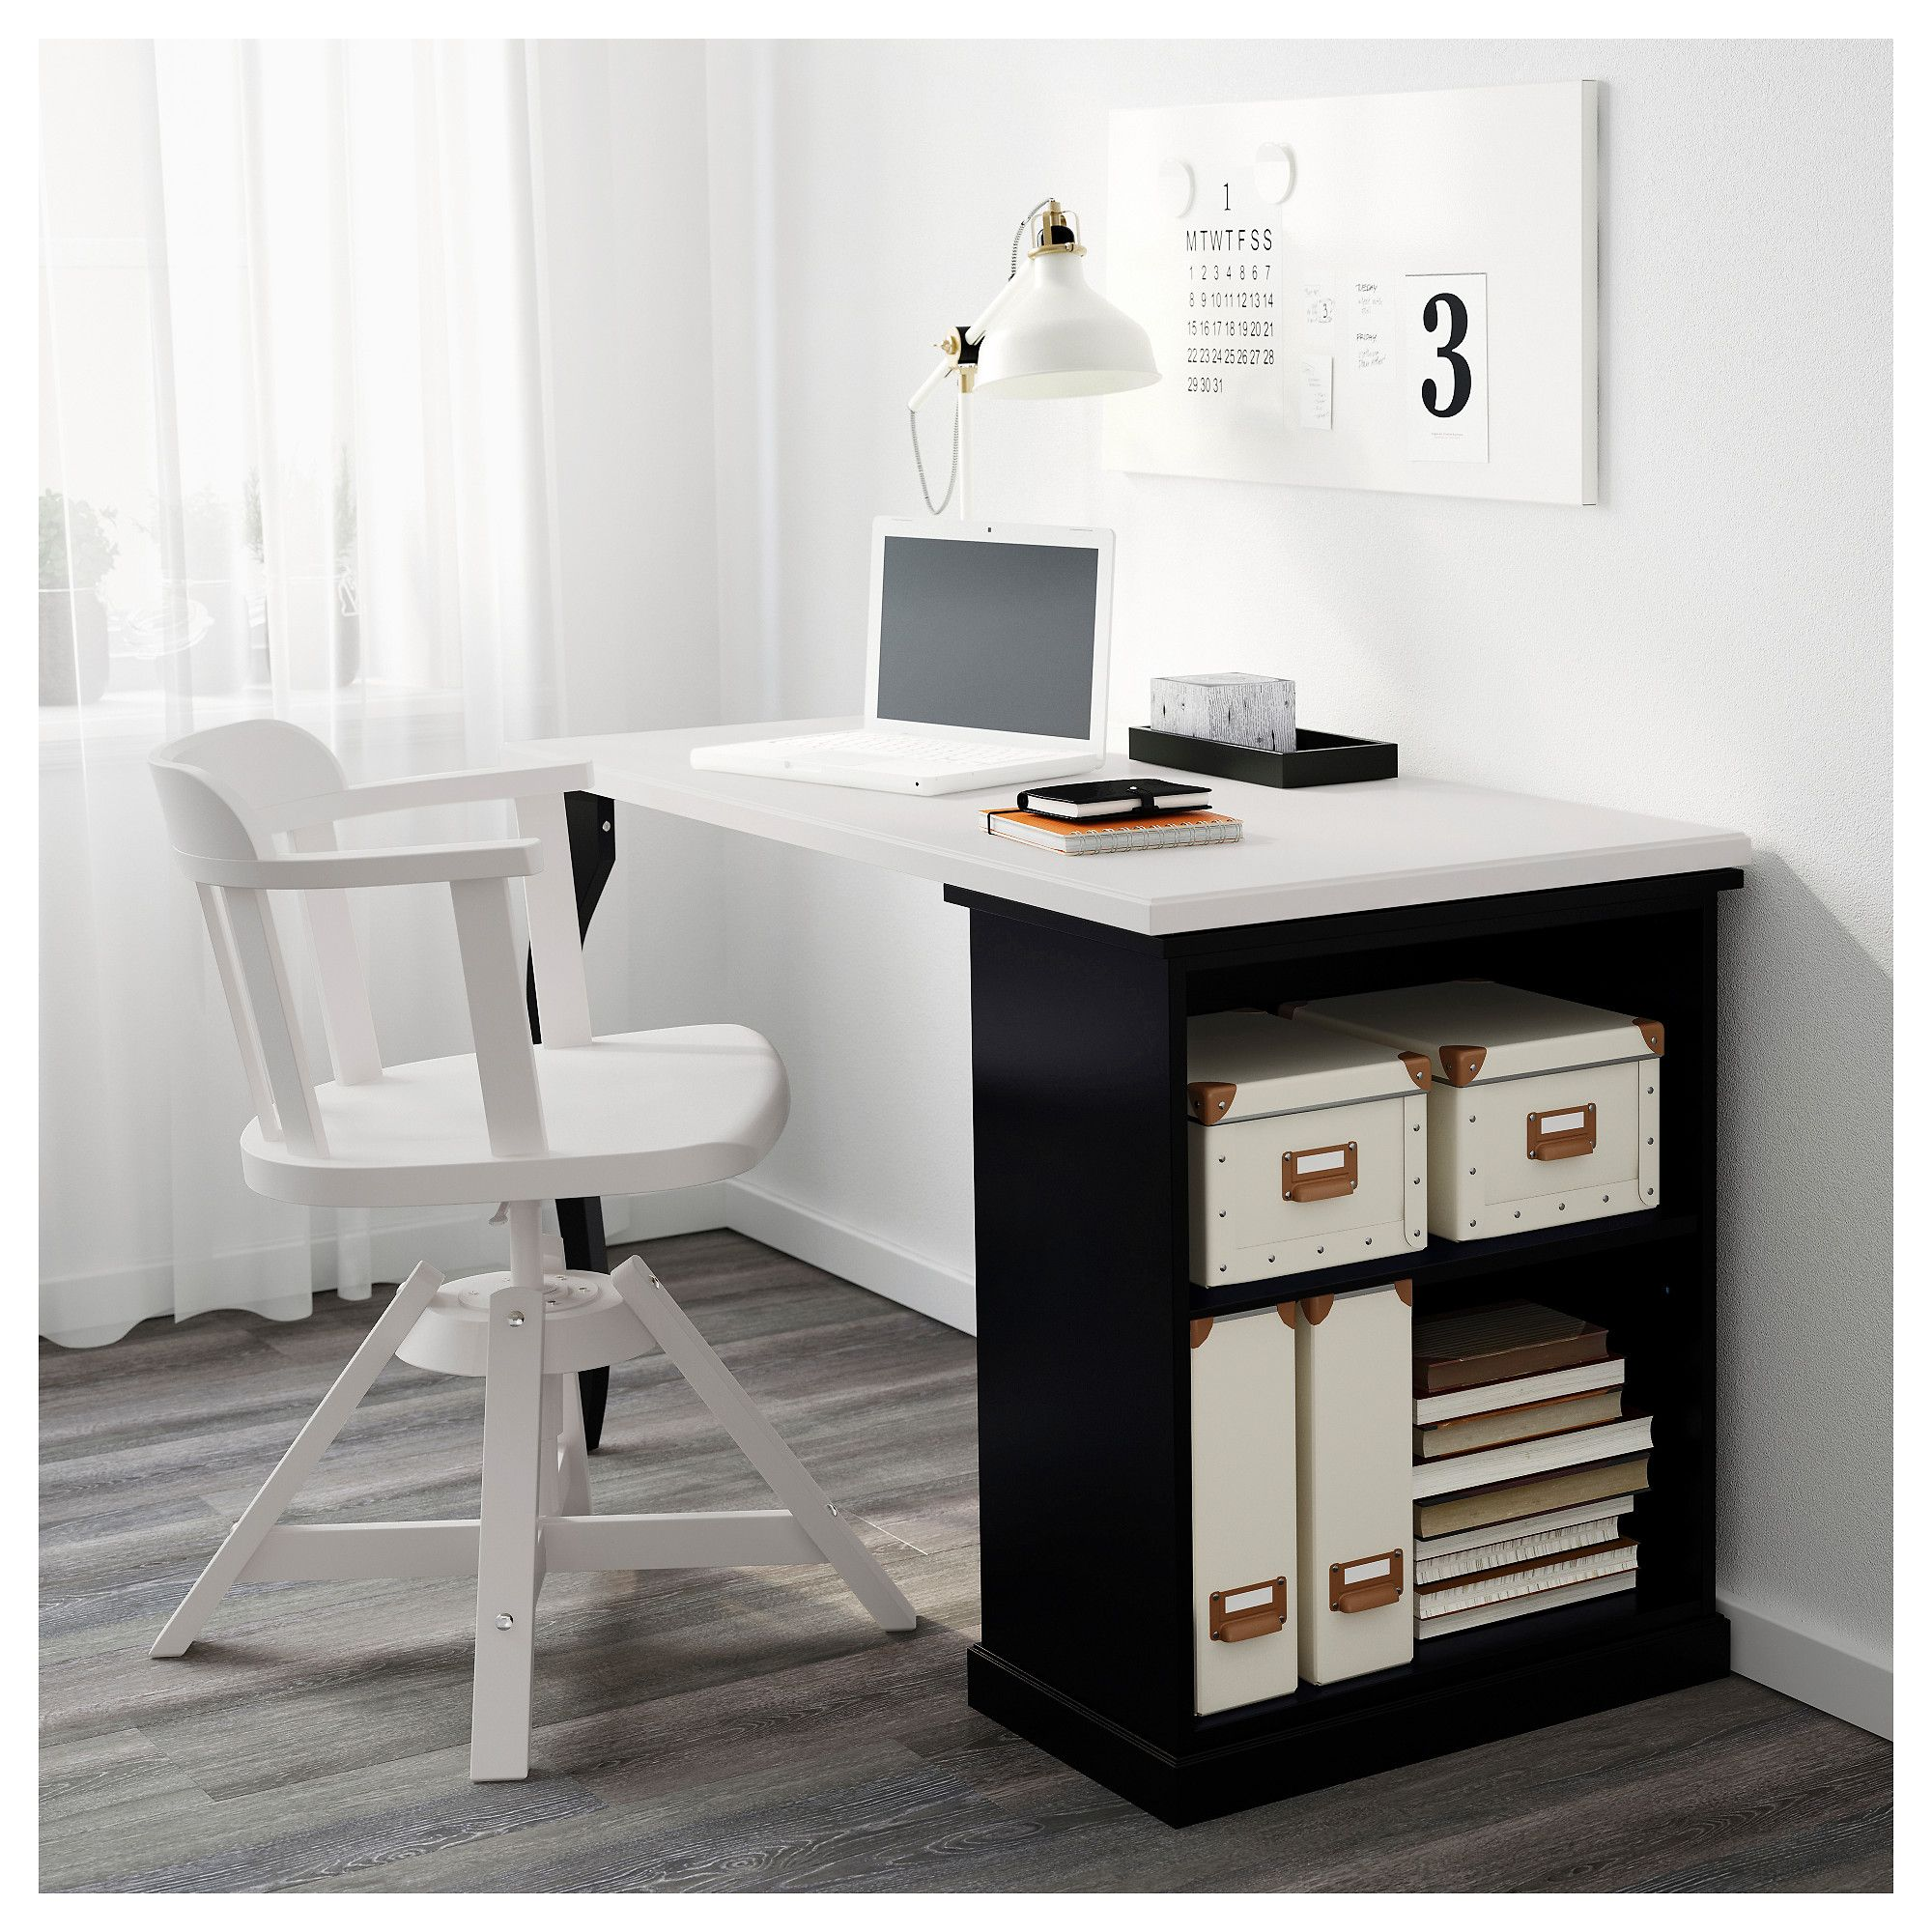 Shop For Furniture, Home Accessories & More